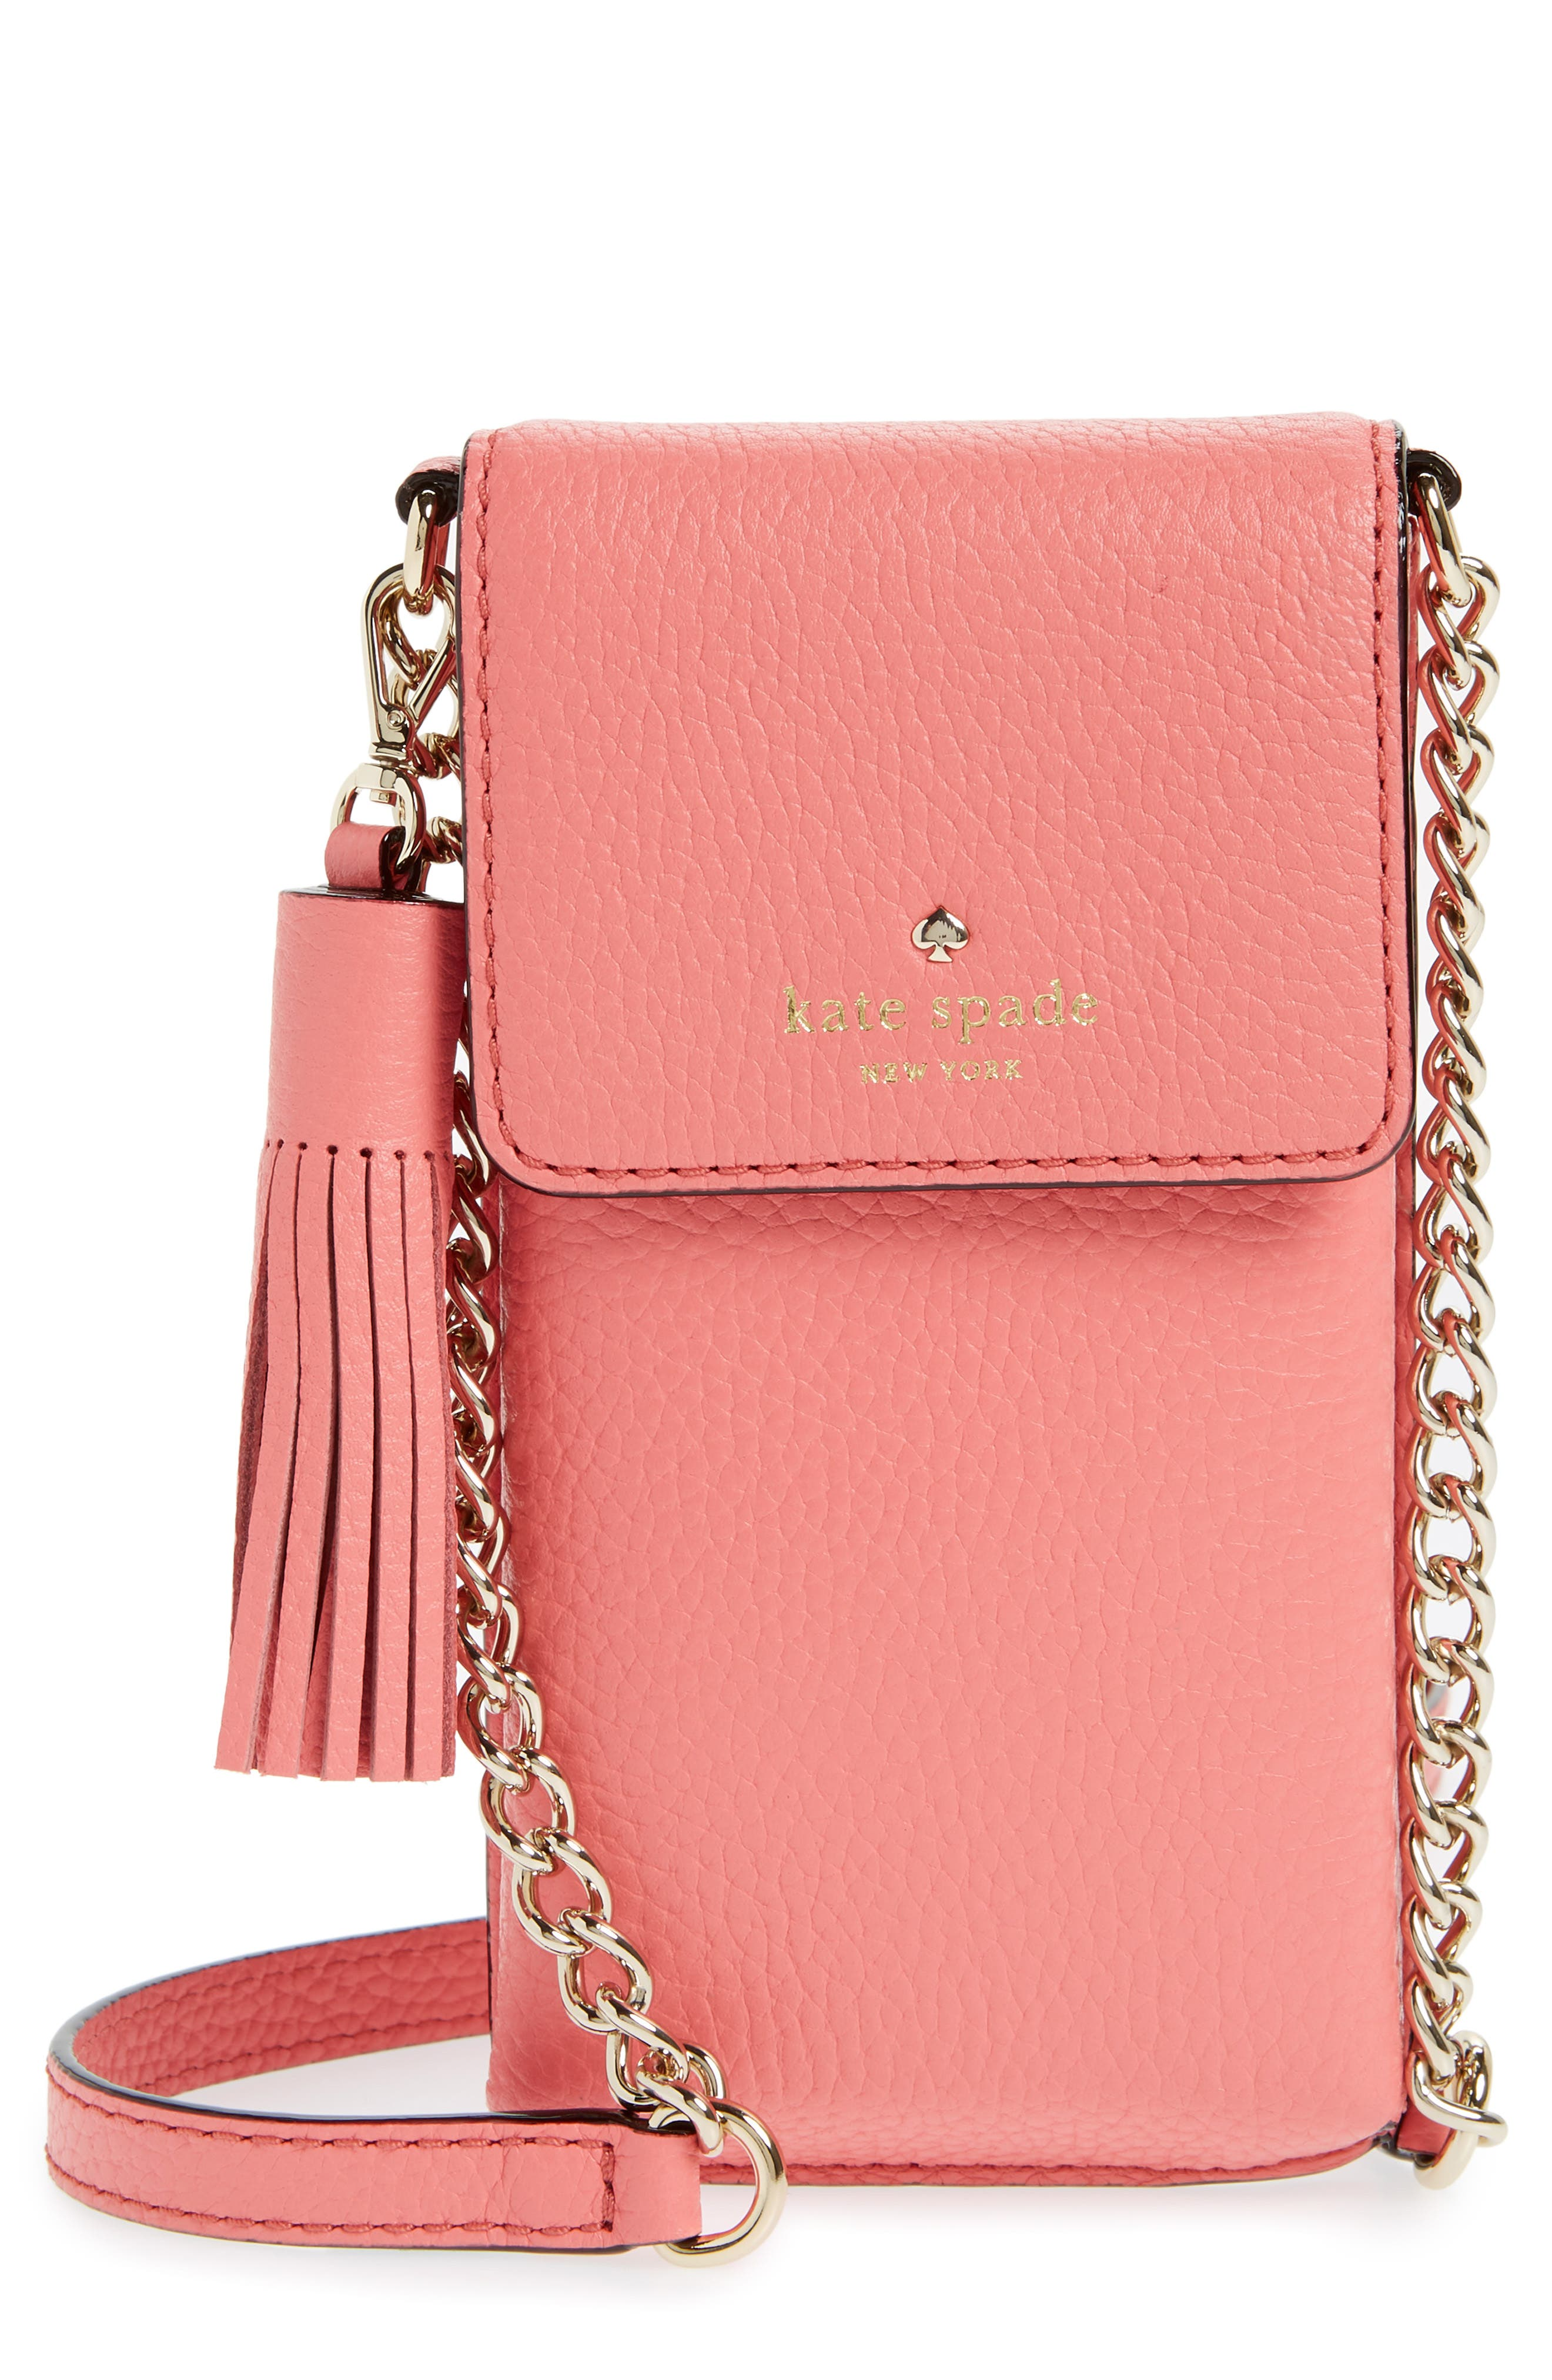 north/south leather smartphone crossbody bag,                         Main,                         color, CORAL PEBBLE